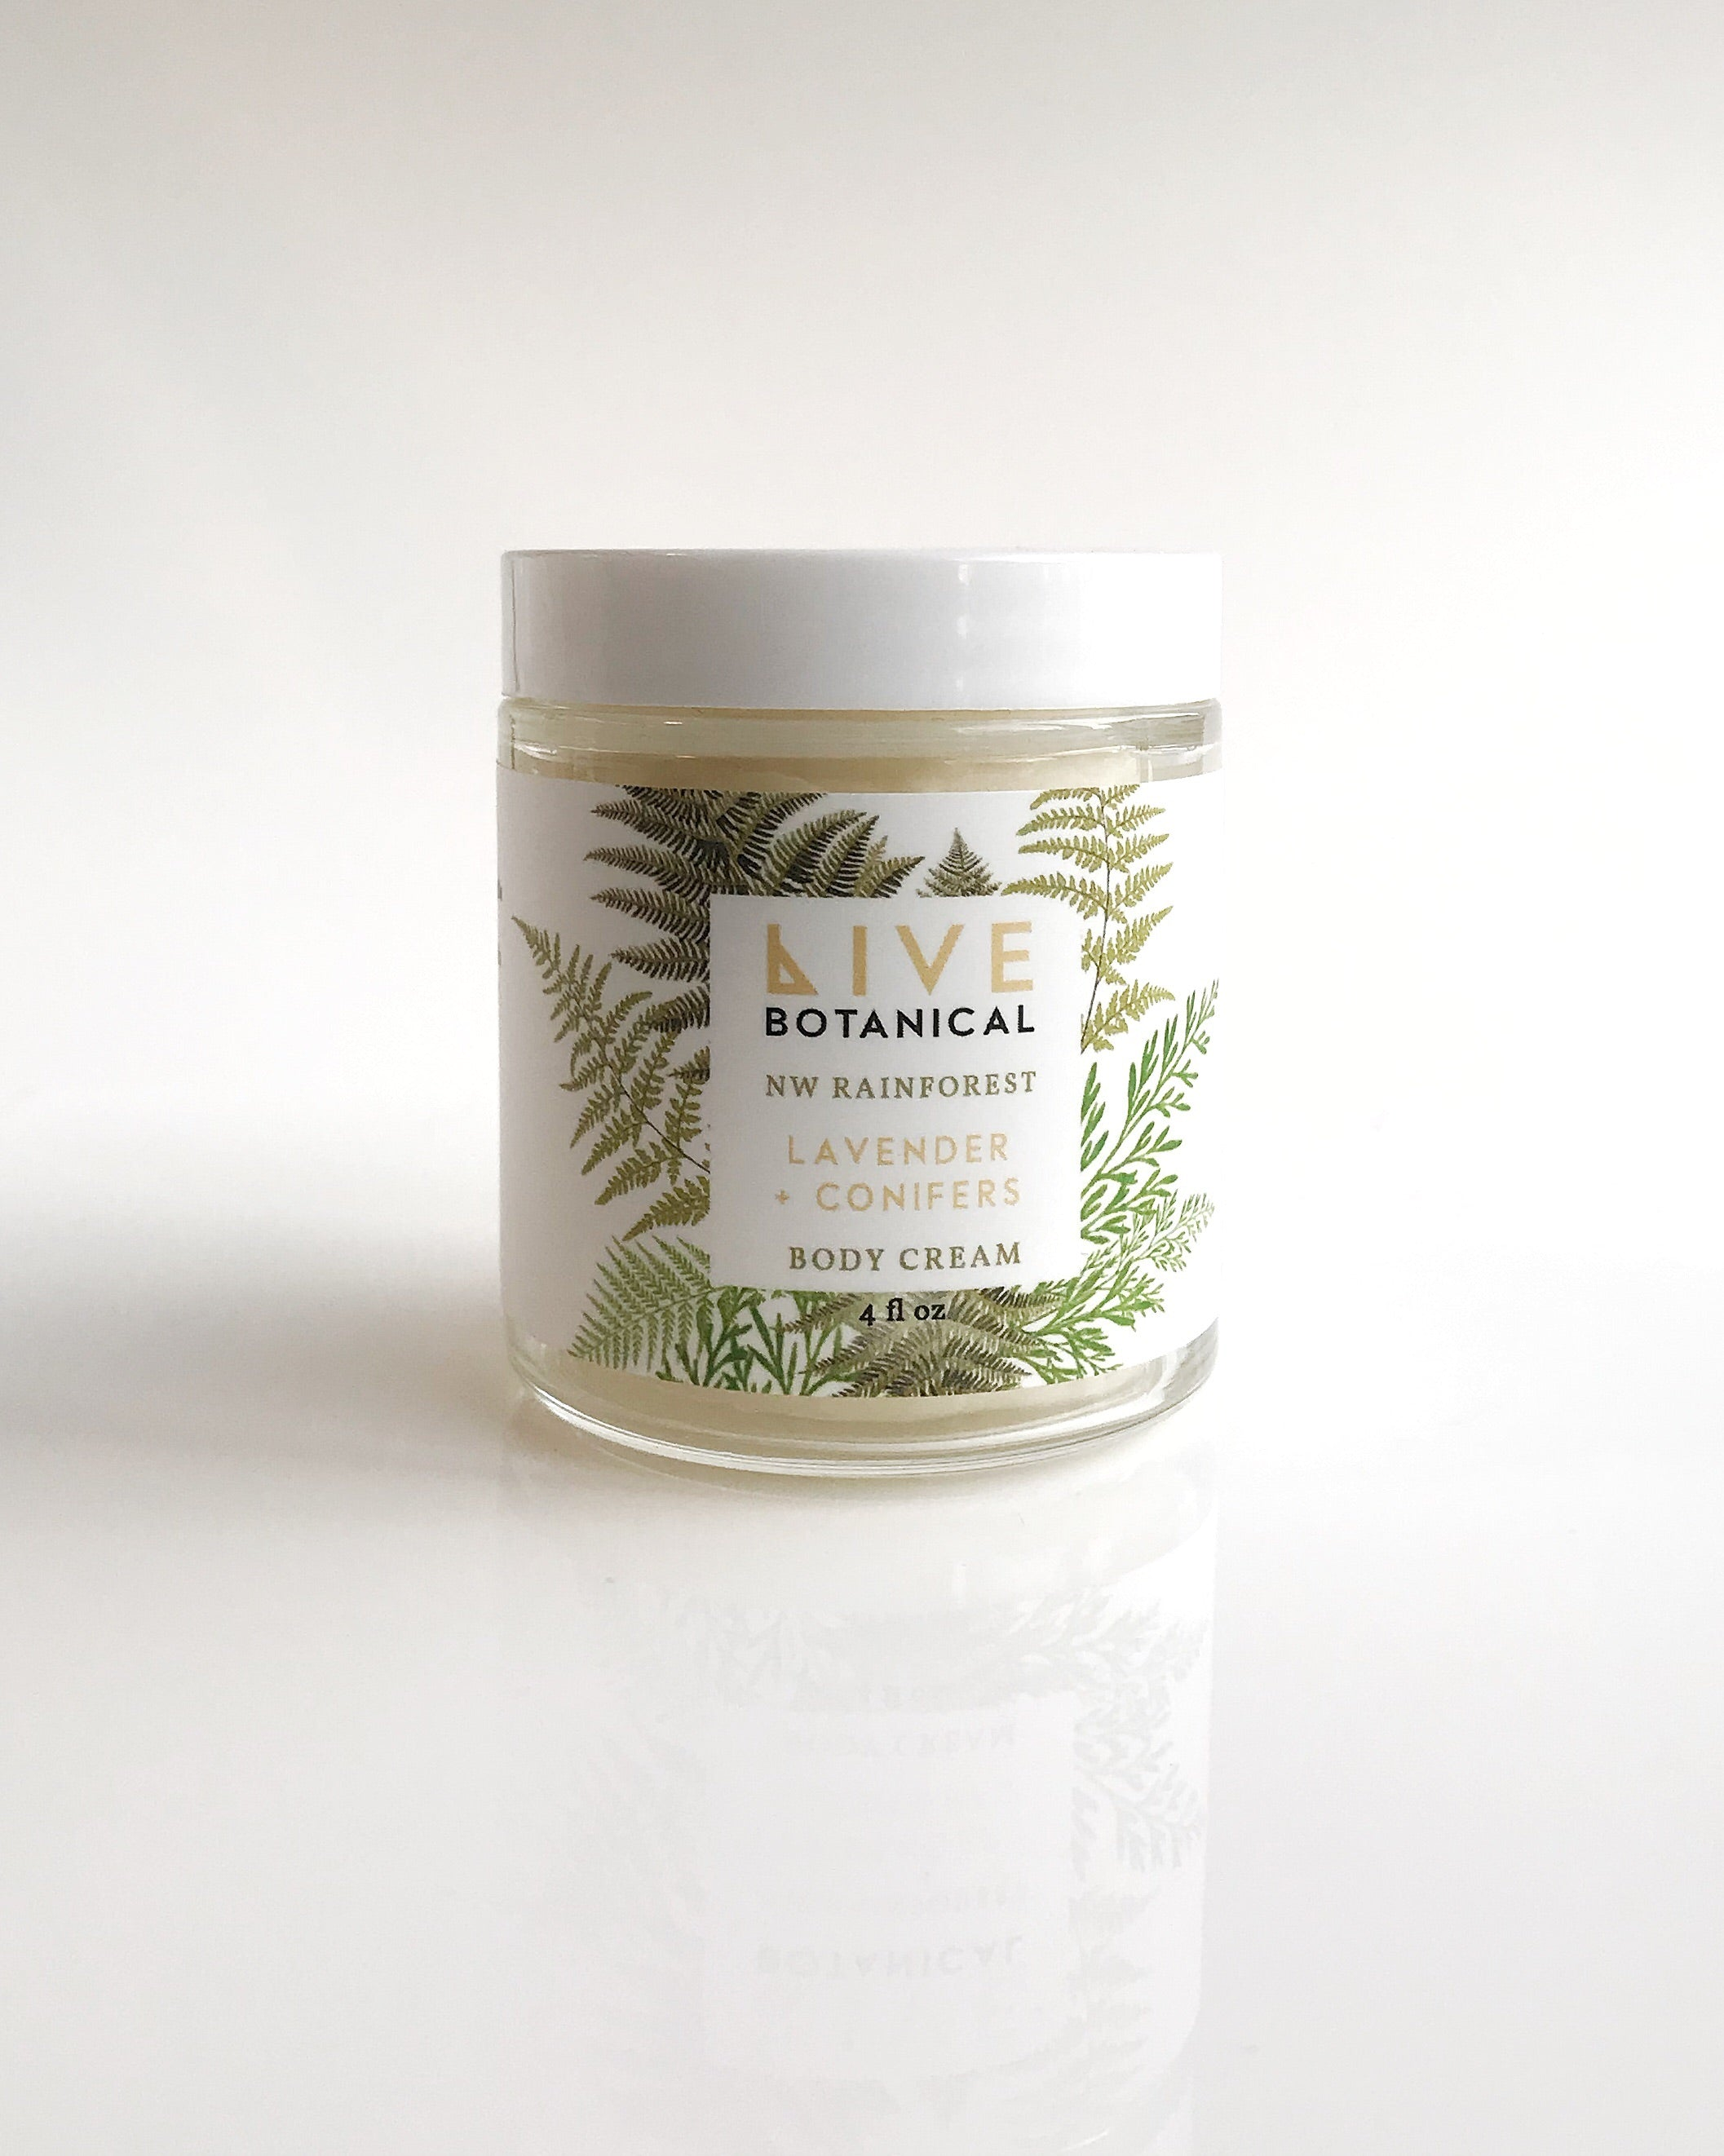 NW Rainforest Body Cream